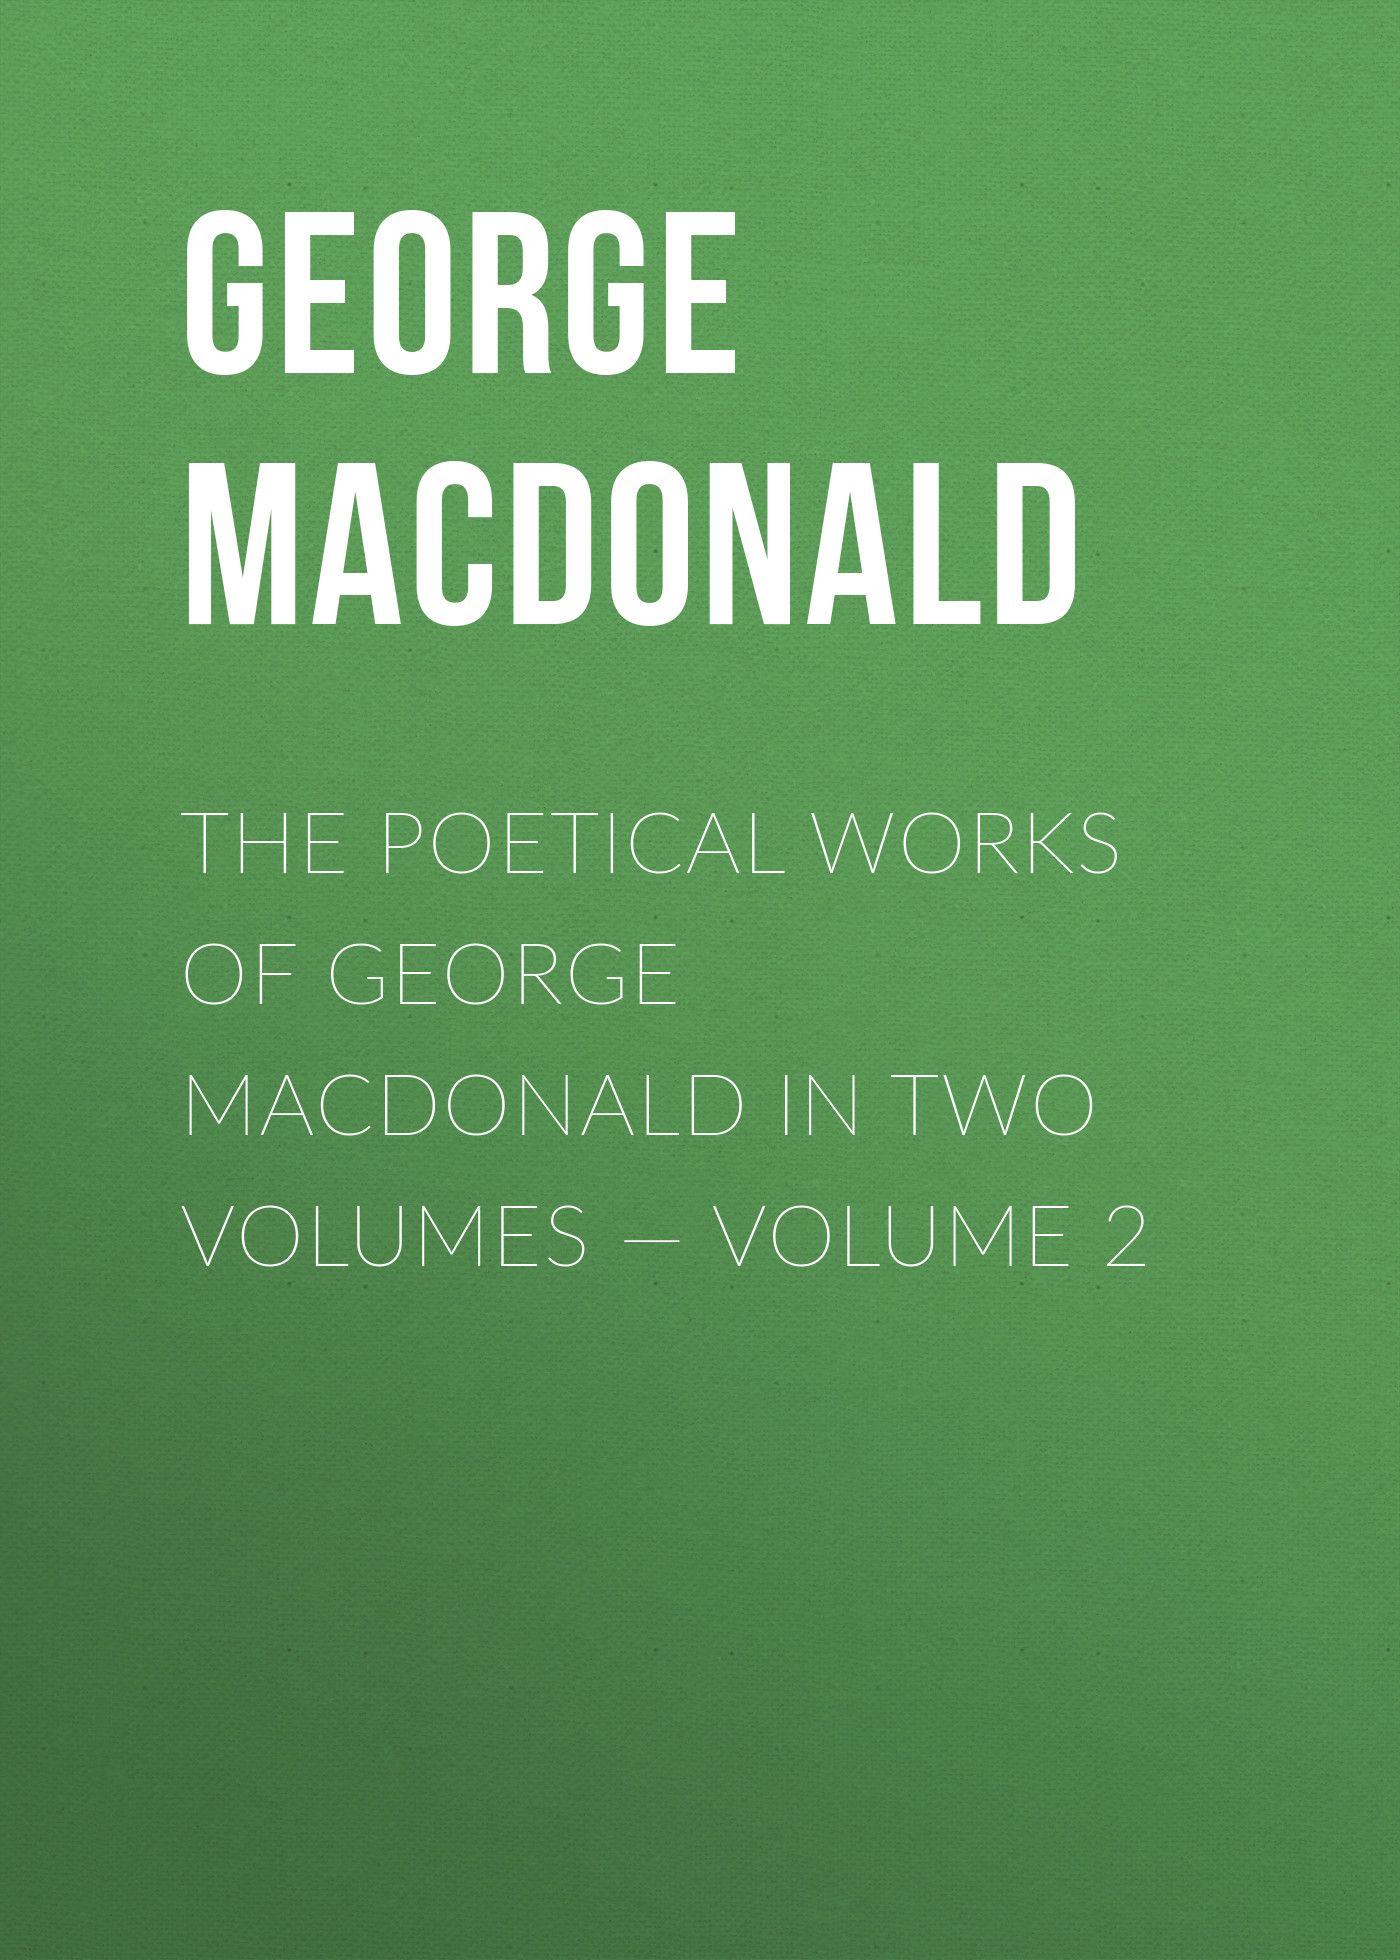 George MacDonald The poetical works of George MacDonald in two volumes — Volume 2